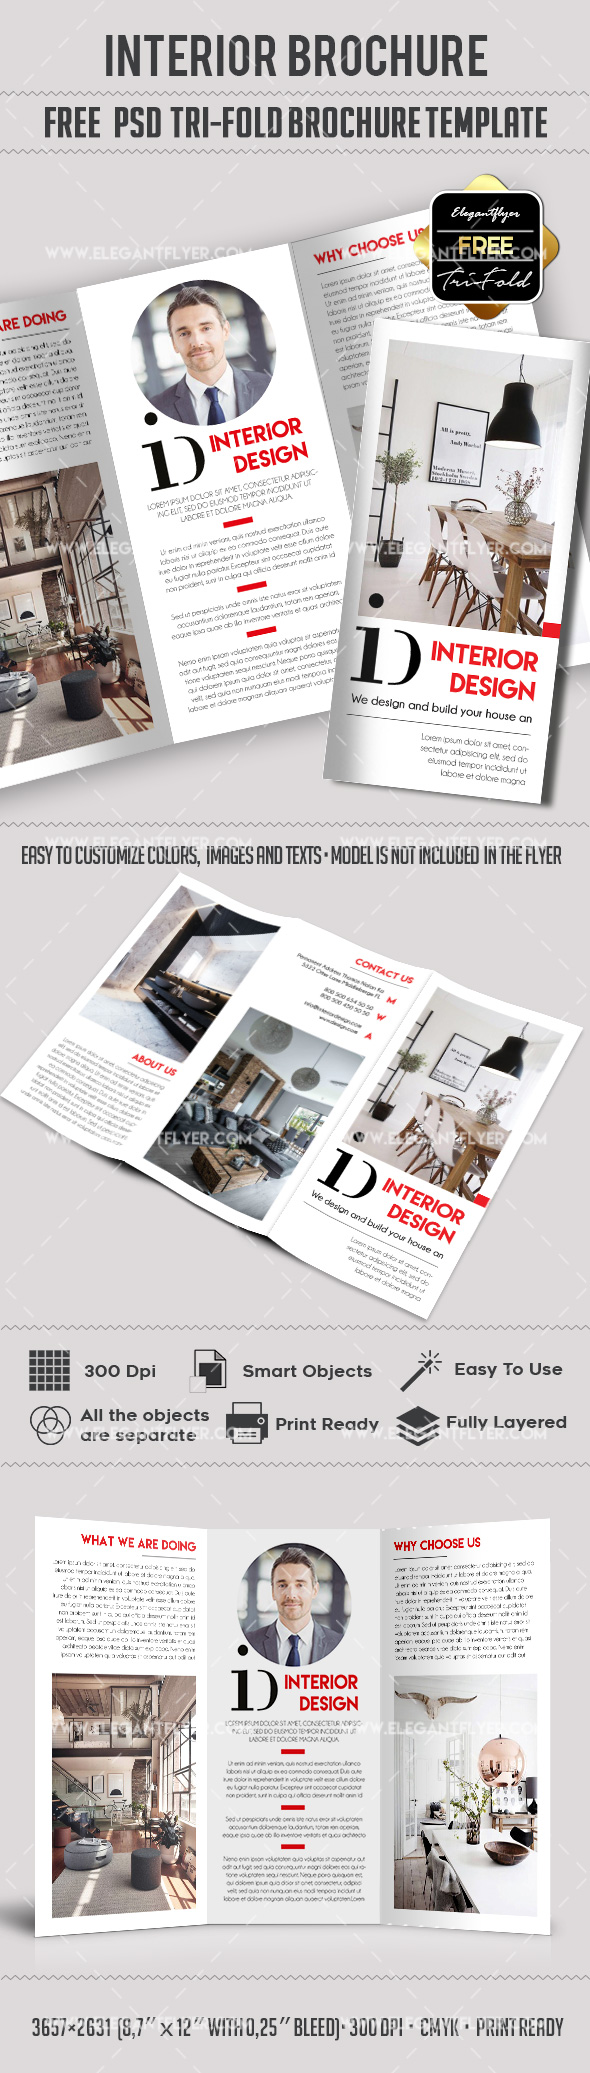 Interior design free tri fold brochure by elegantflyer for Brochure photoshop template